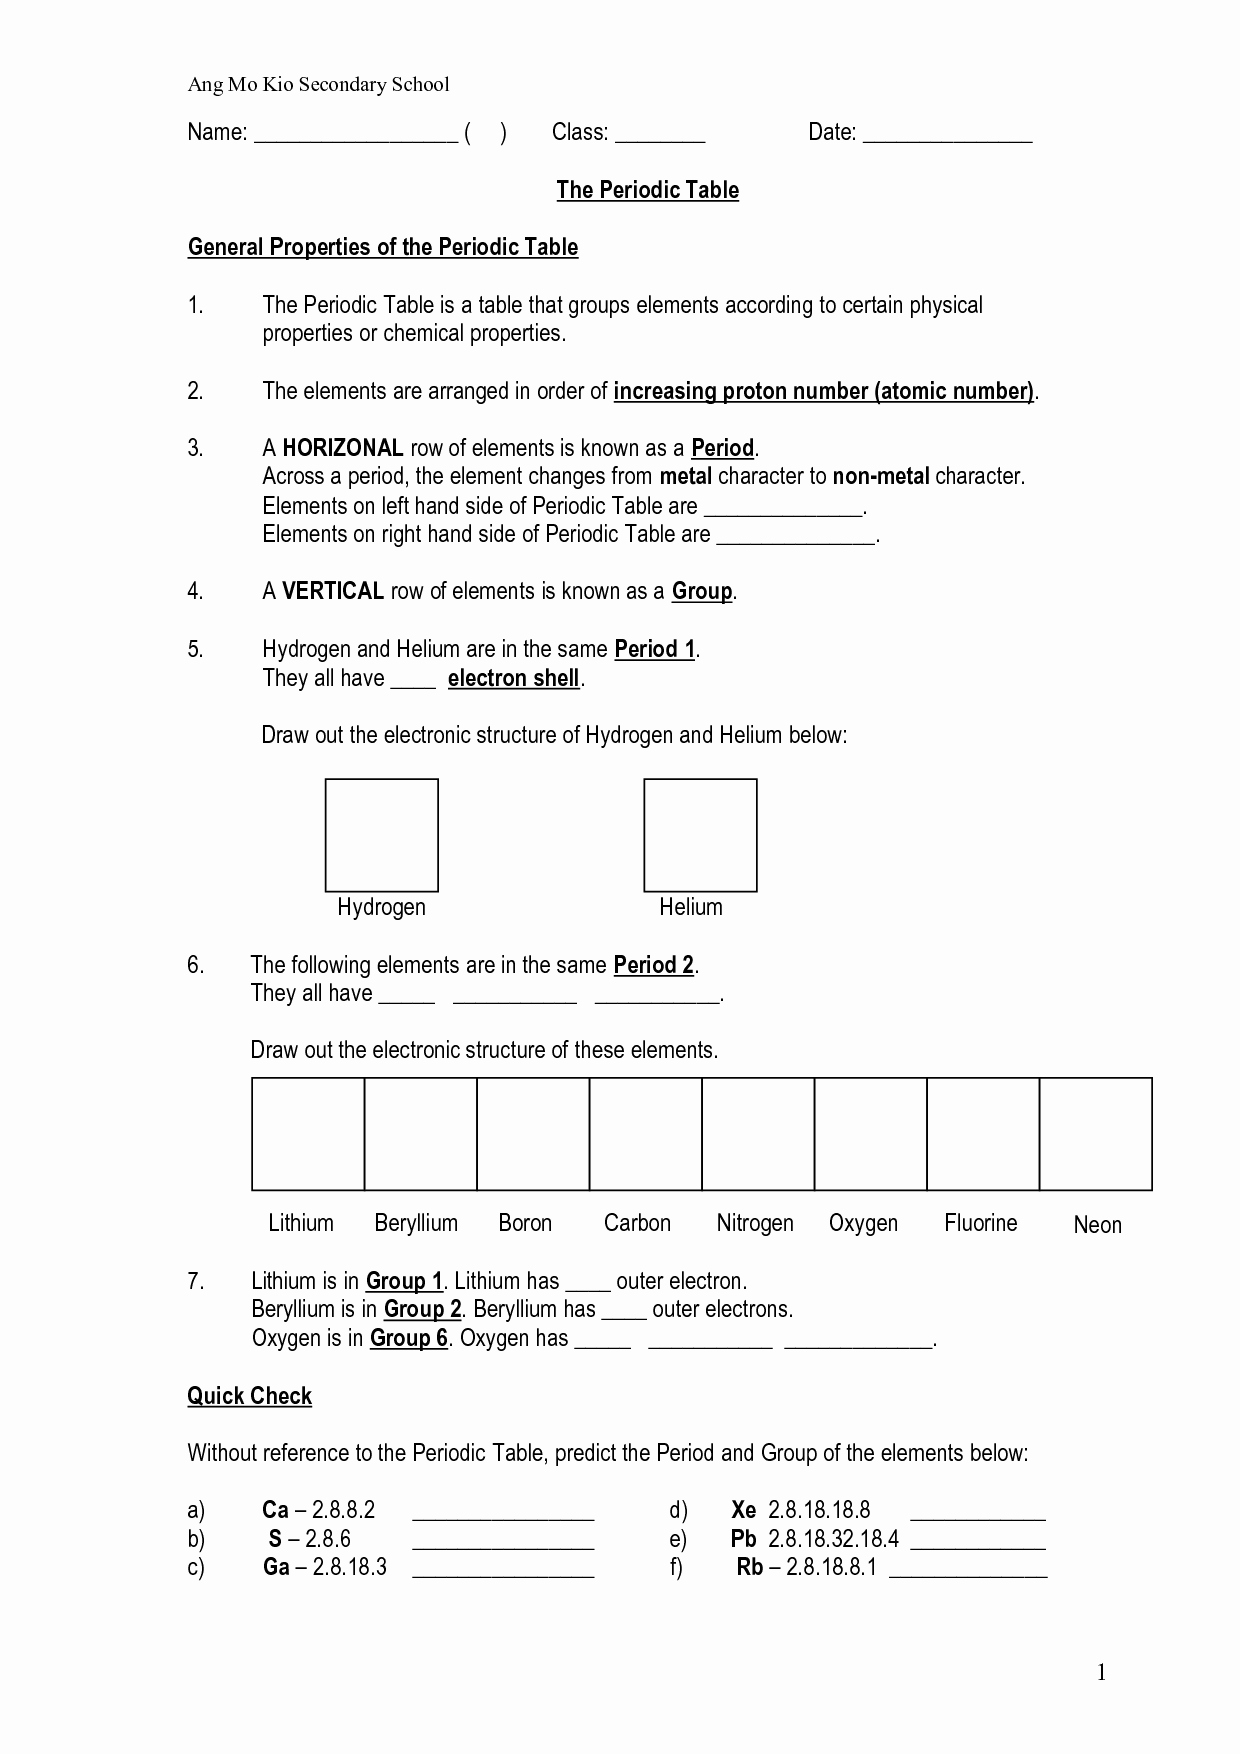 Atoms and Elements Worksheet Luxury Periodic Table Worksheets Chemistry